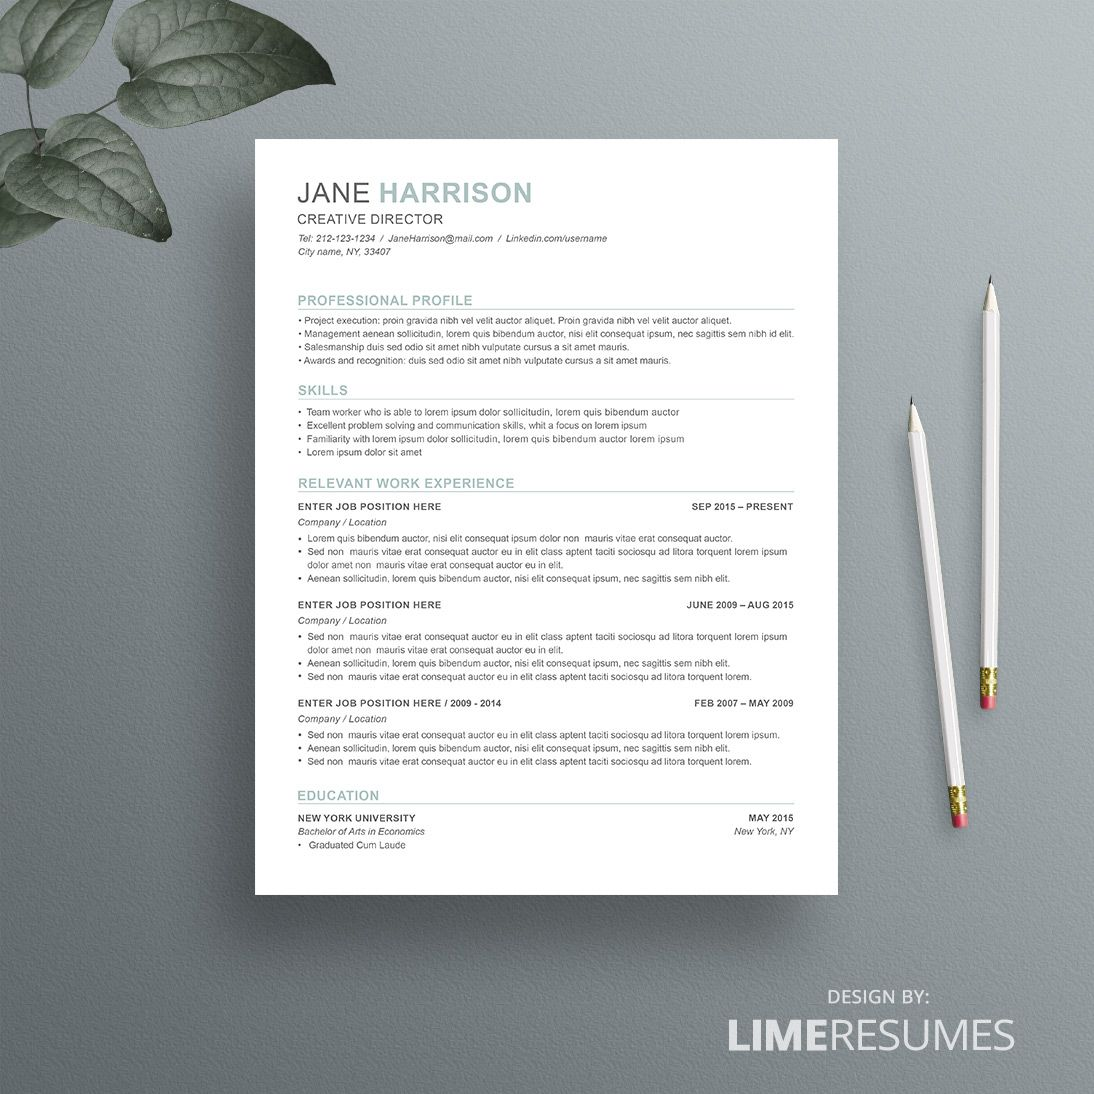 Combination Resume Template Combination Resume Format Resume Template Word Resume Template Job Resume Template